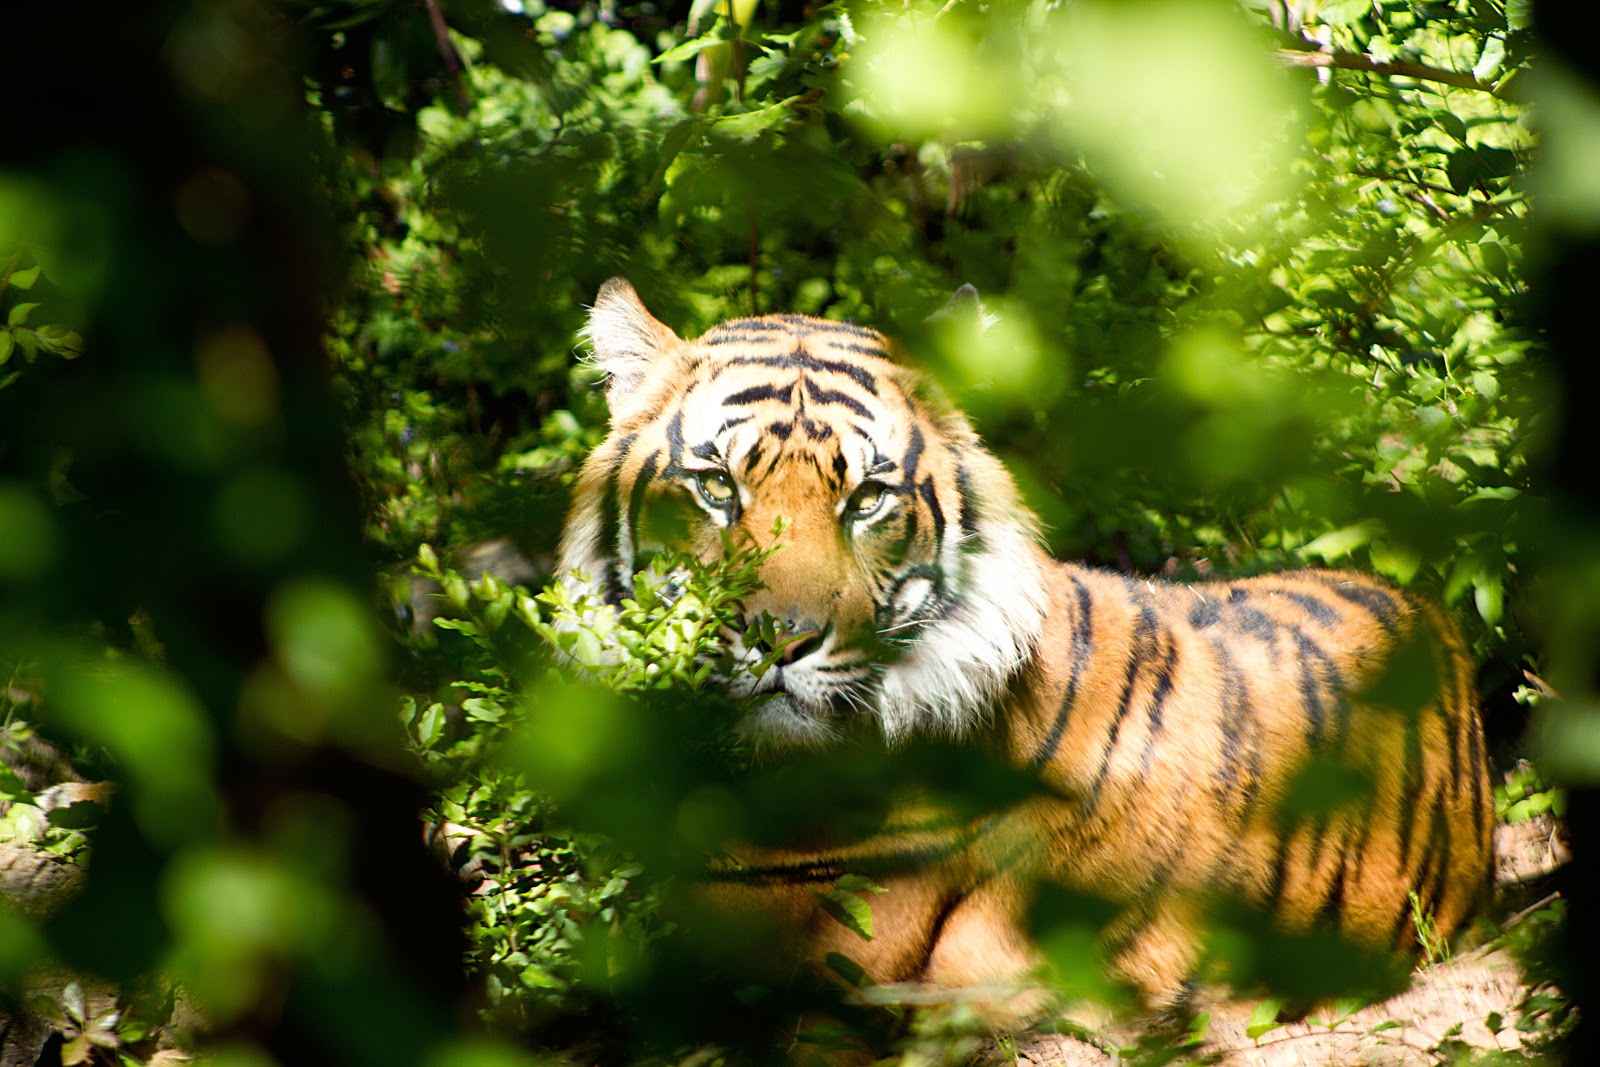 tiger-through-green-leaves-during-day-images